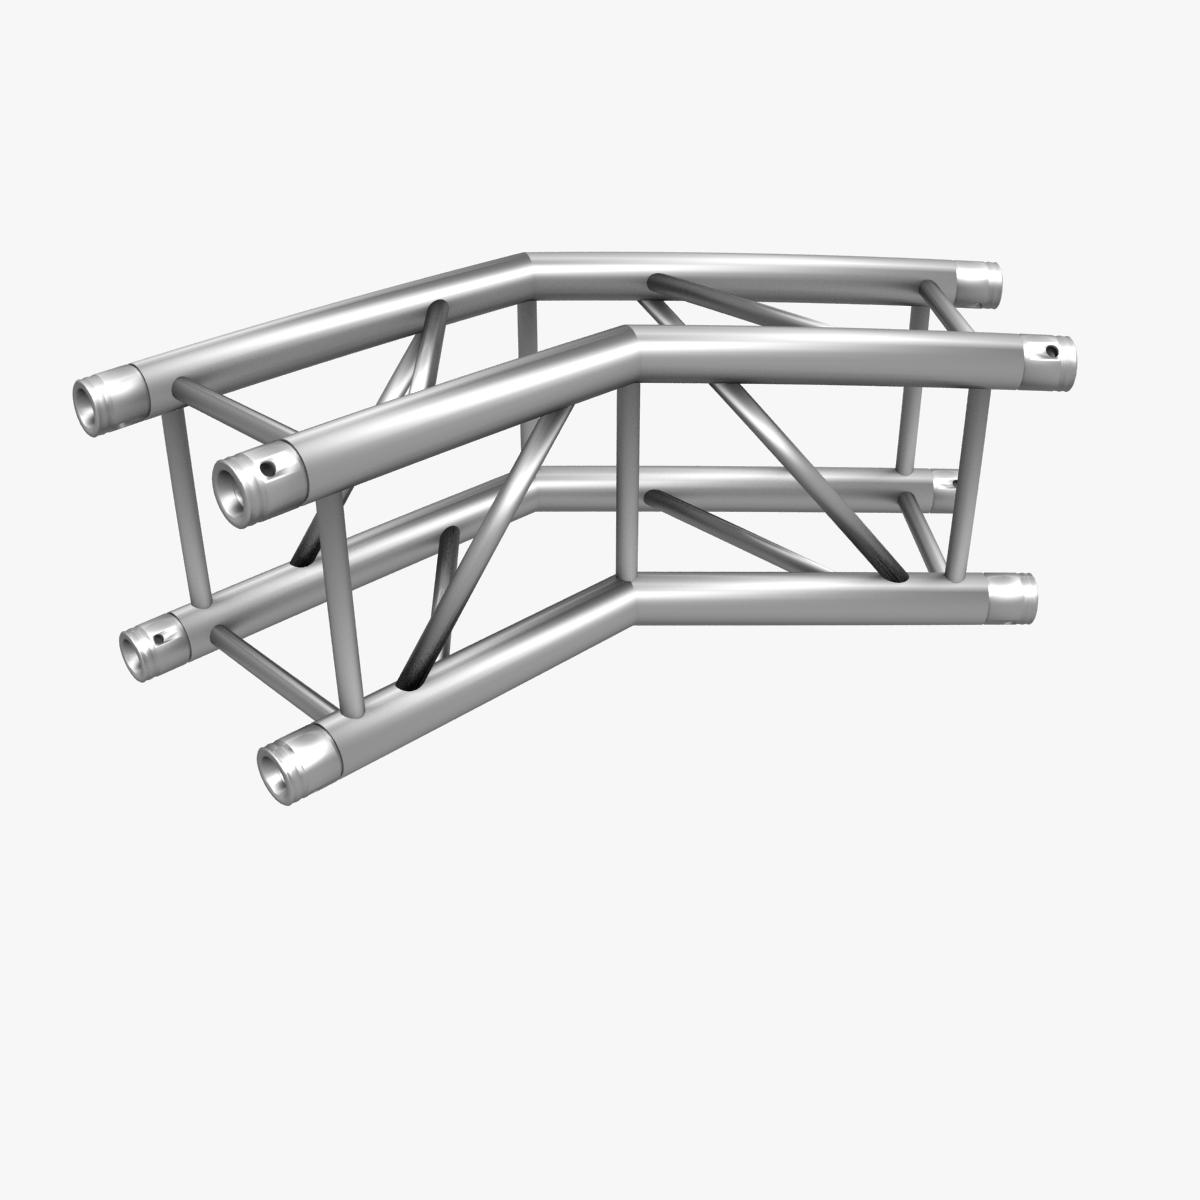 square truss standard (collection 24 modular) 3d model 3ds max dxf fbx c4d dae  texture obj 216362